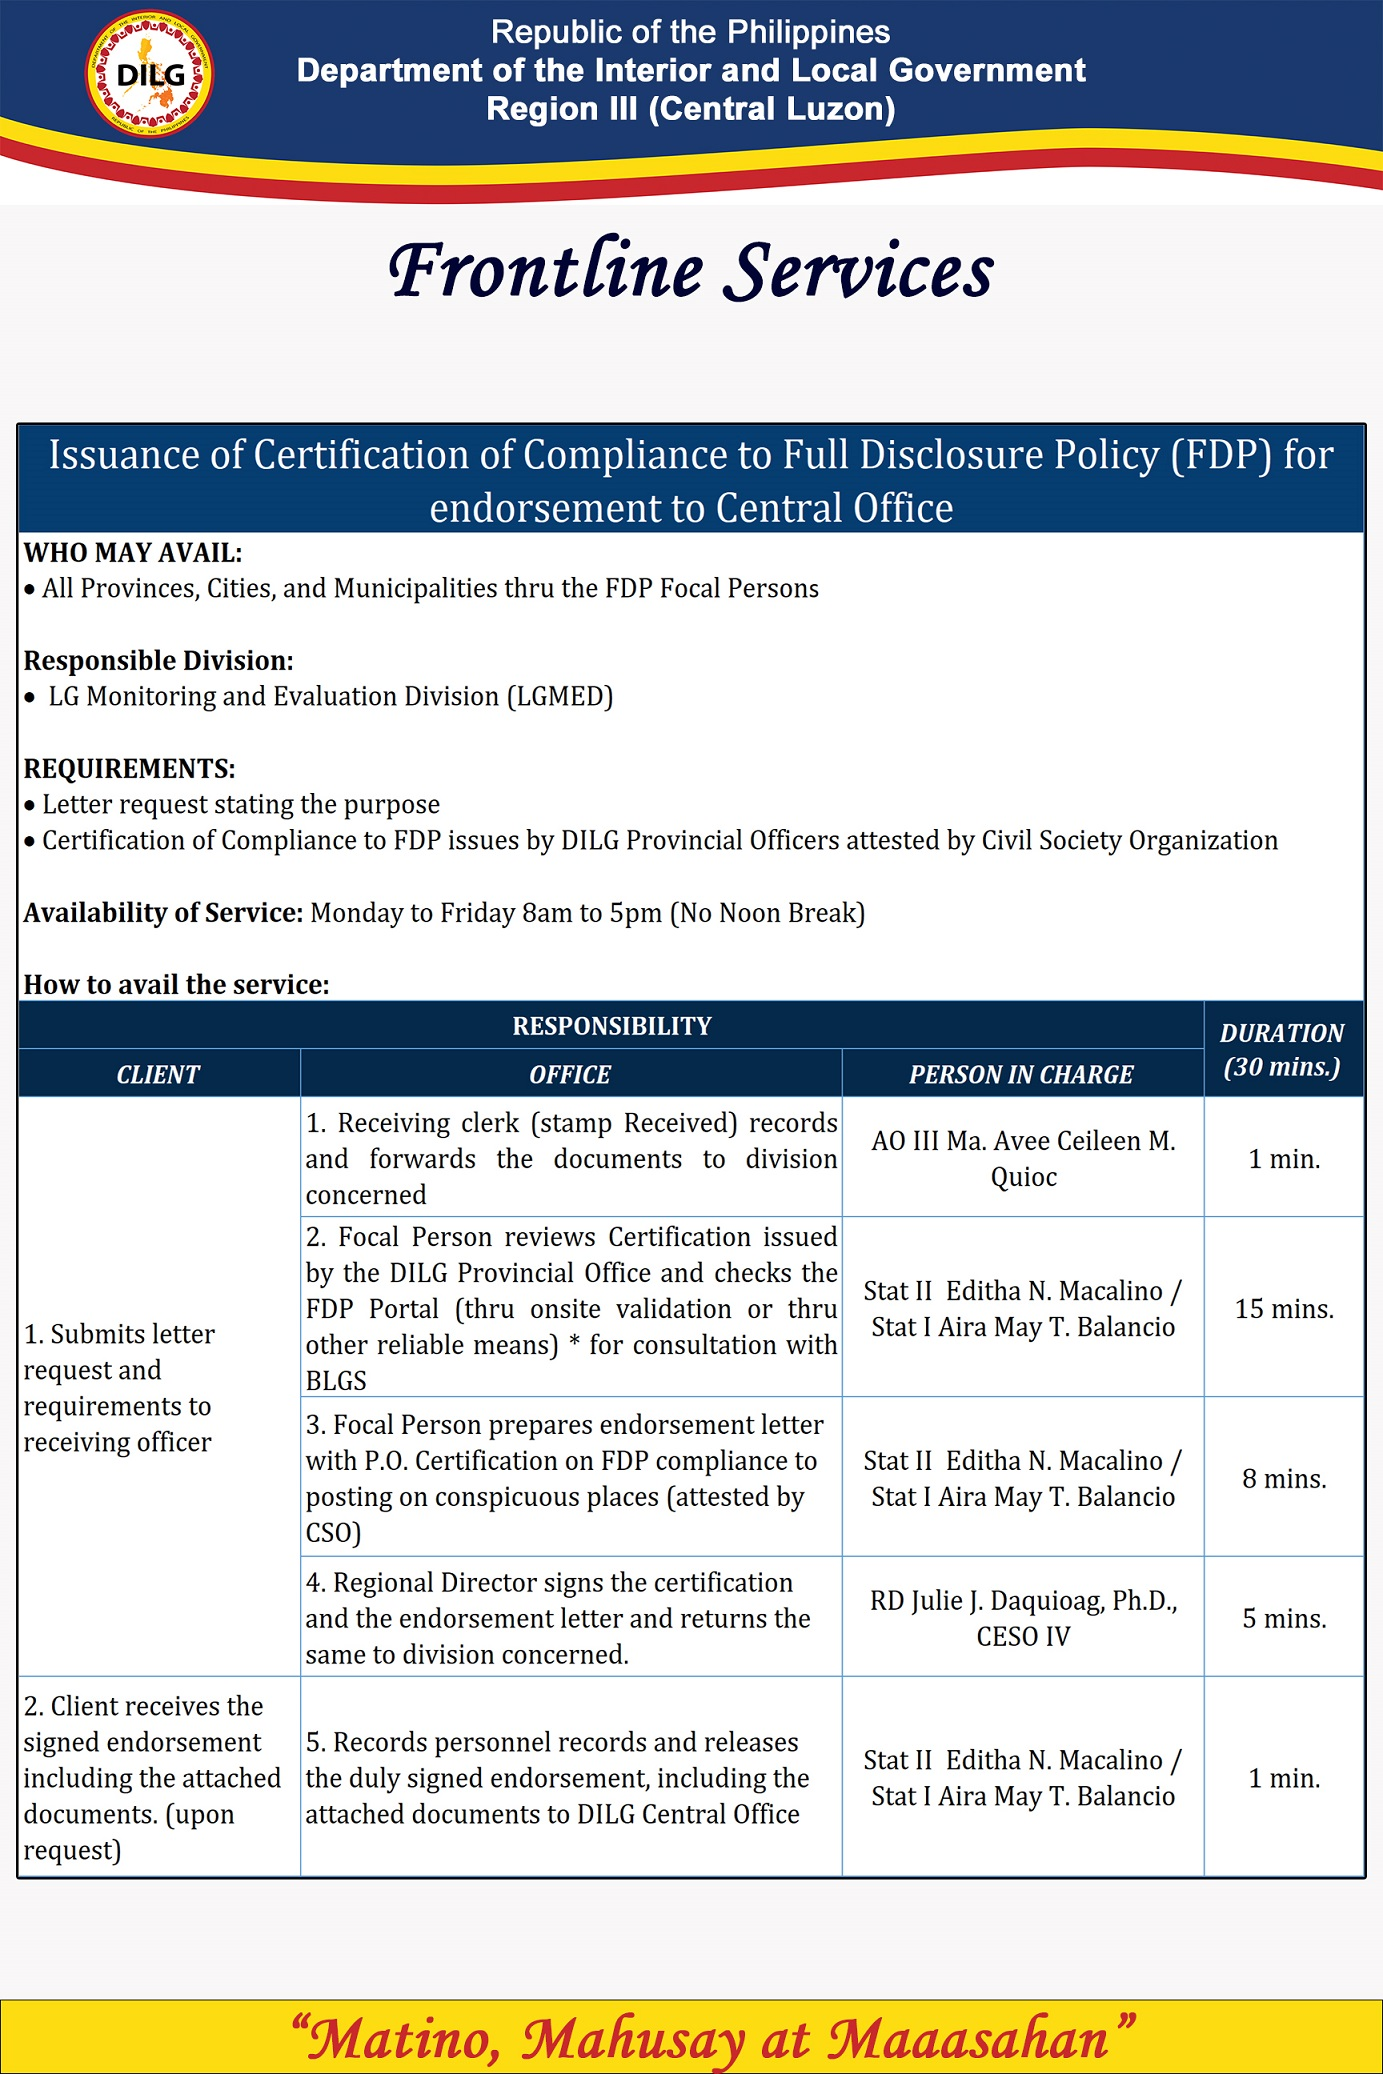 Issuance_of_Certification_of_Compliance_to_Full_Disclosure_Policy.jpg